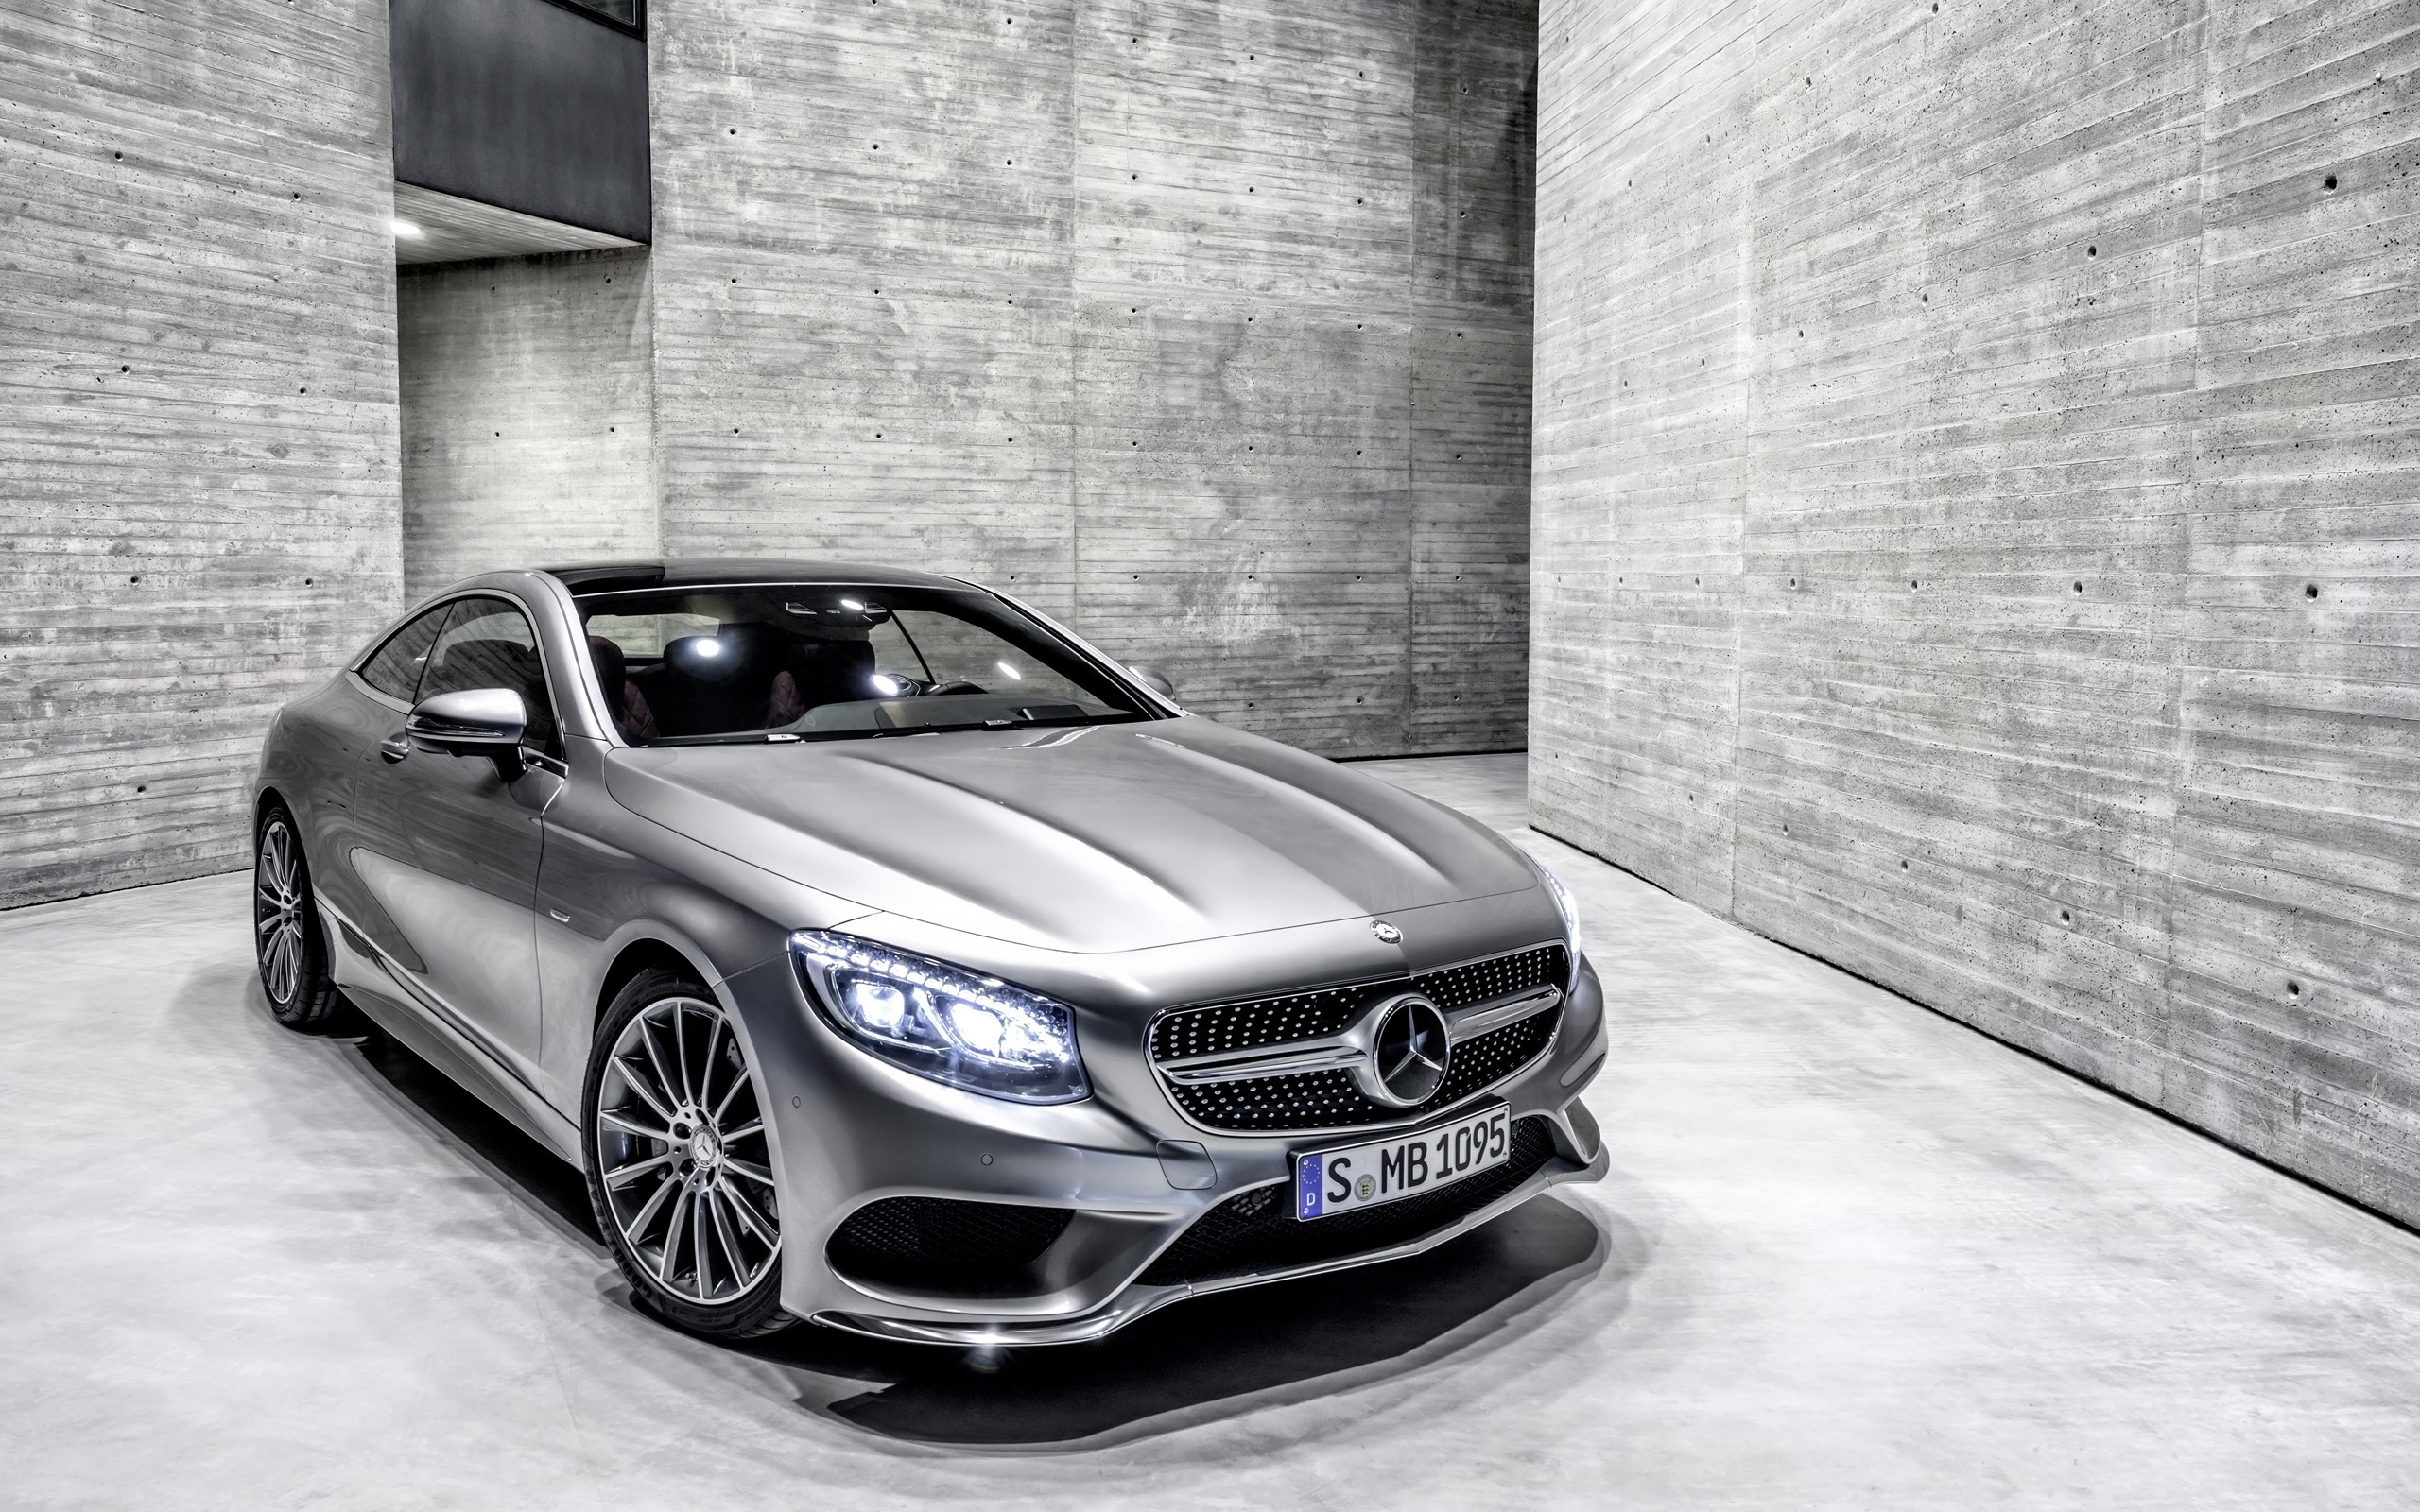 2014 mercedes benz s class coupe wallpaper hd car wallpapers. Black Bedroom Furniture Sets. Home Design Ideas